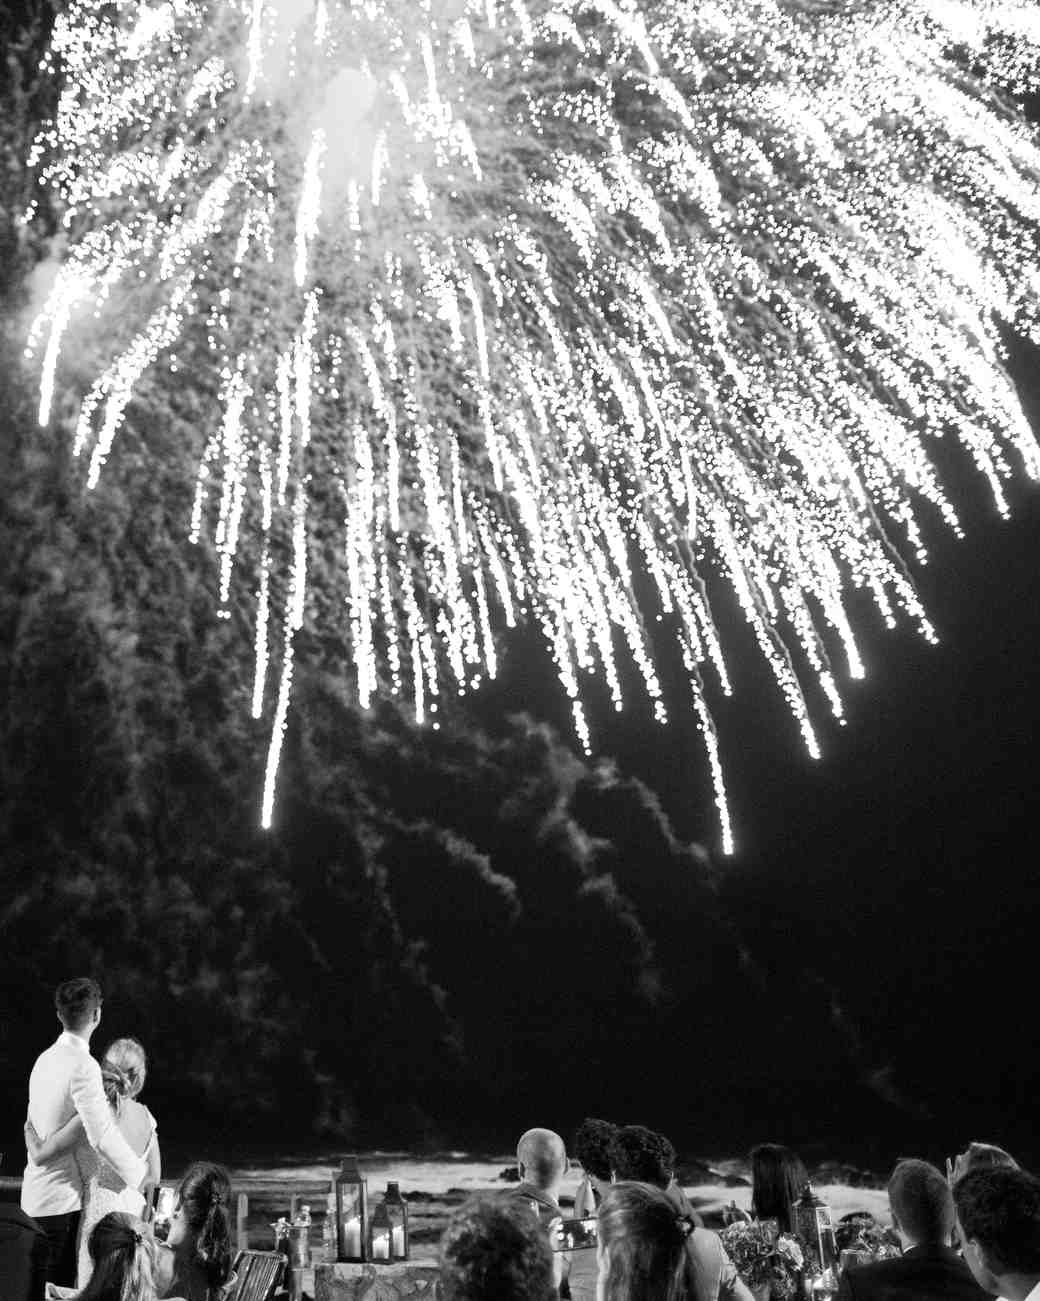 wedding attendees beneath fireworks